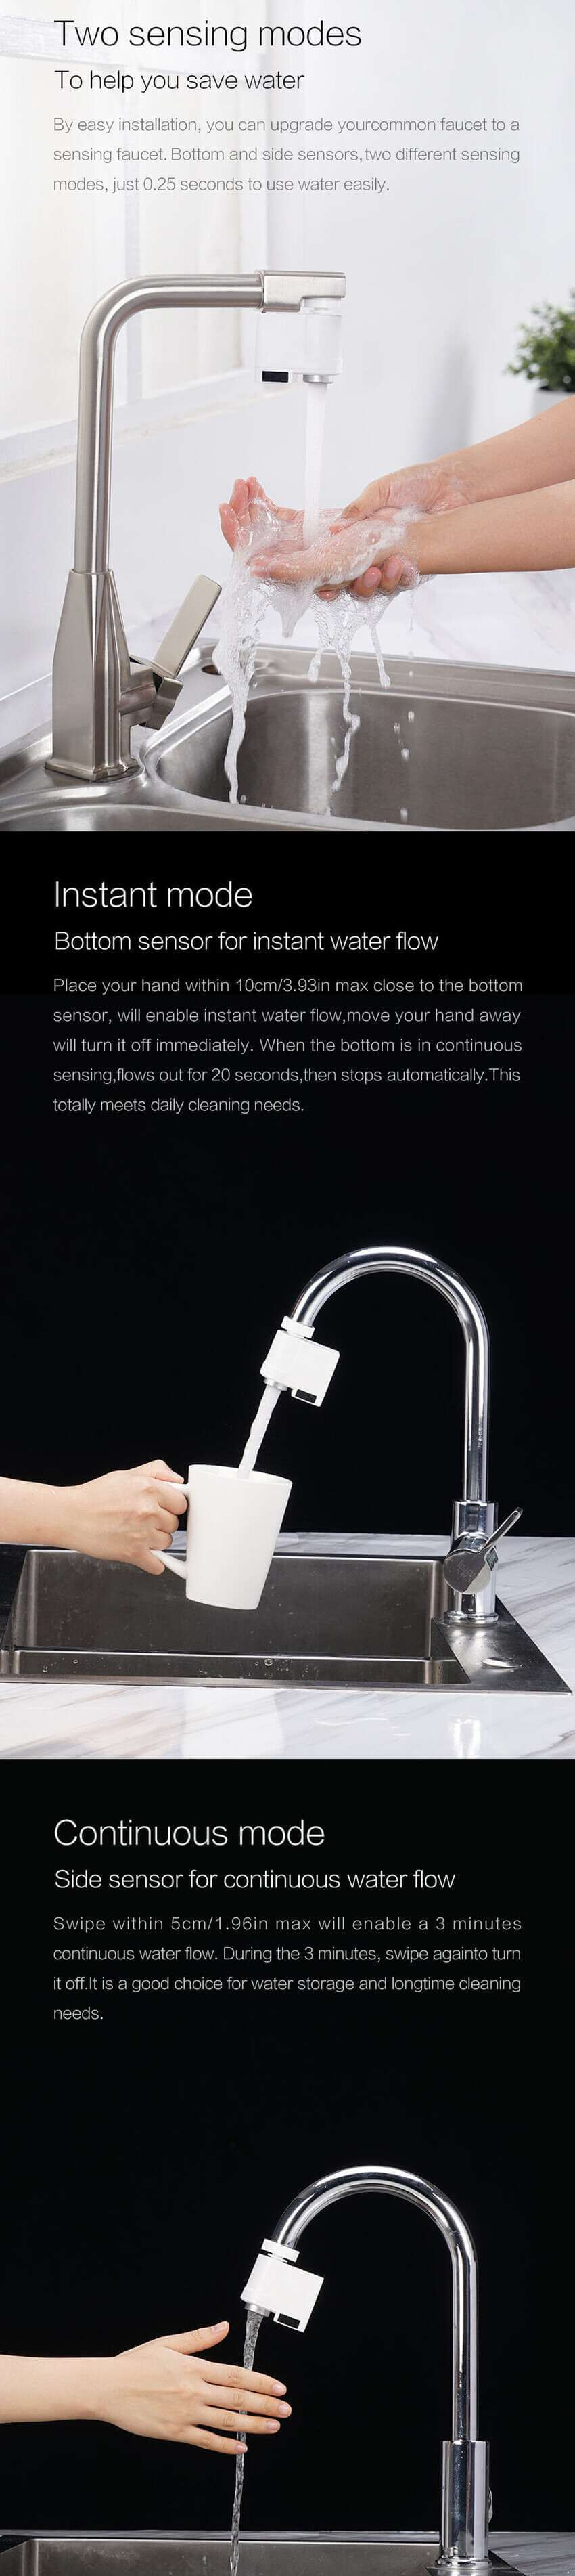 2 motion sensors to provide hands free water access from your faucet